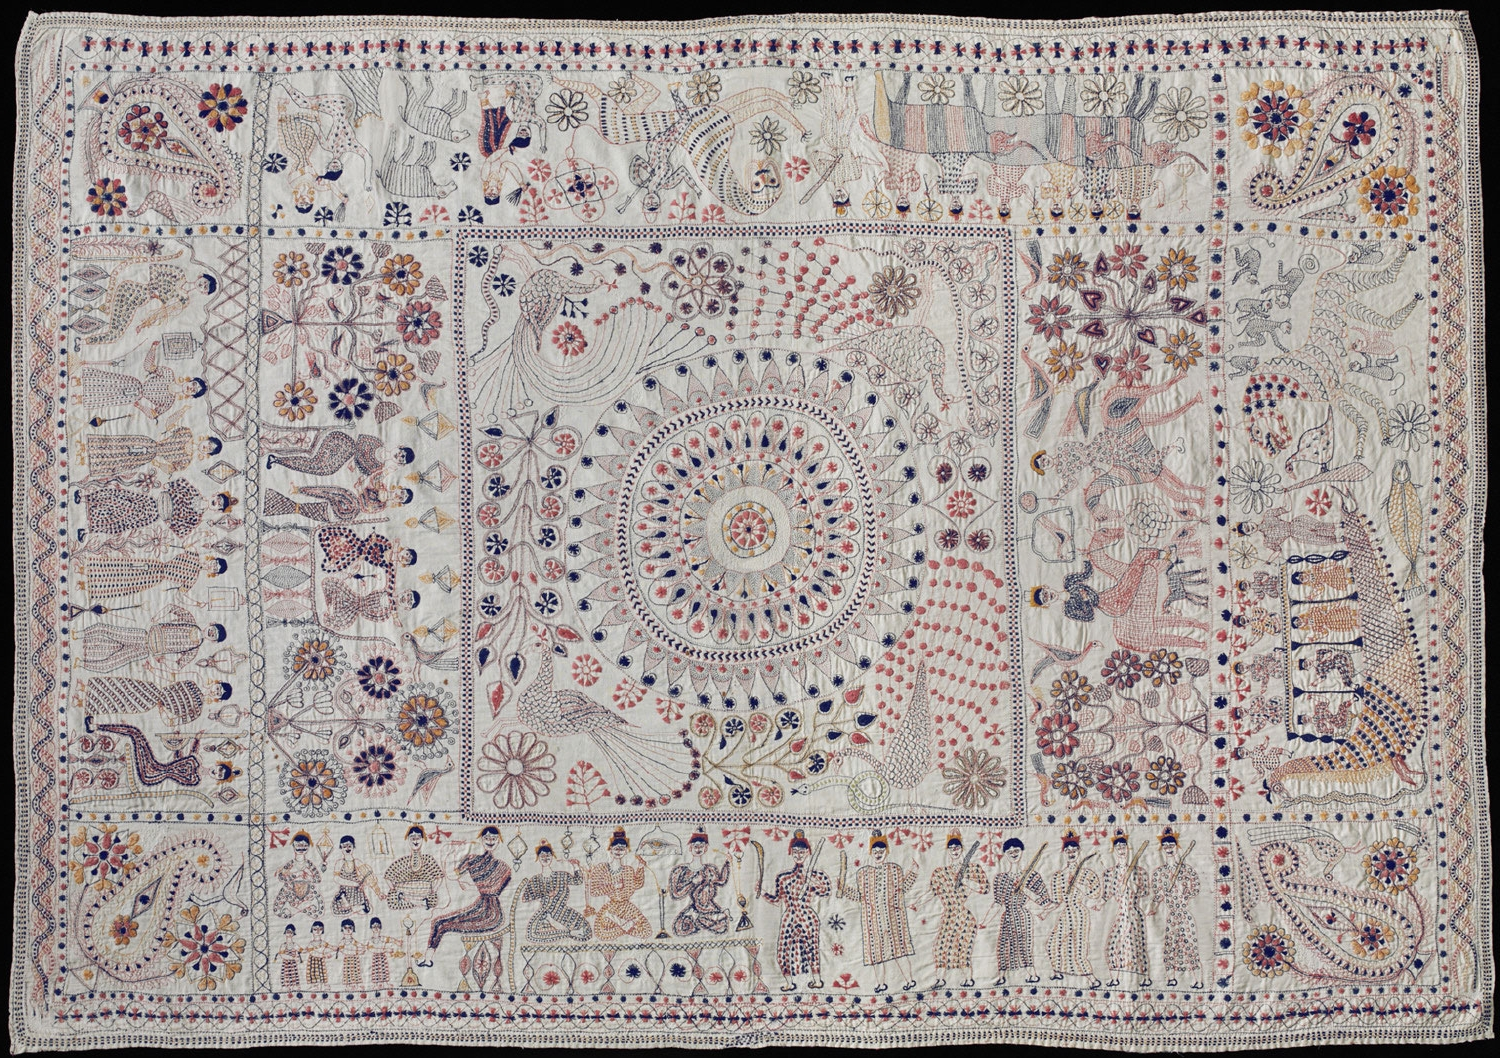 Made in Faridpur District, Bangladesh or West Bengal, India, Asia;Late 19th century